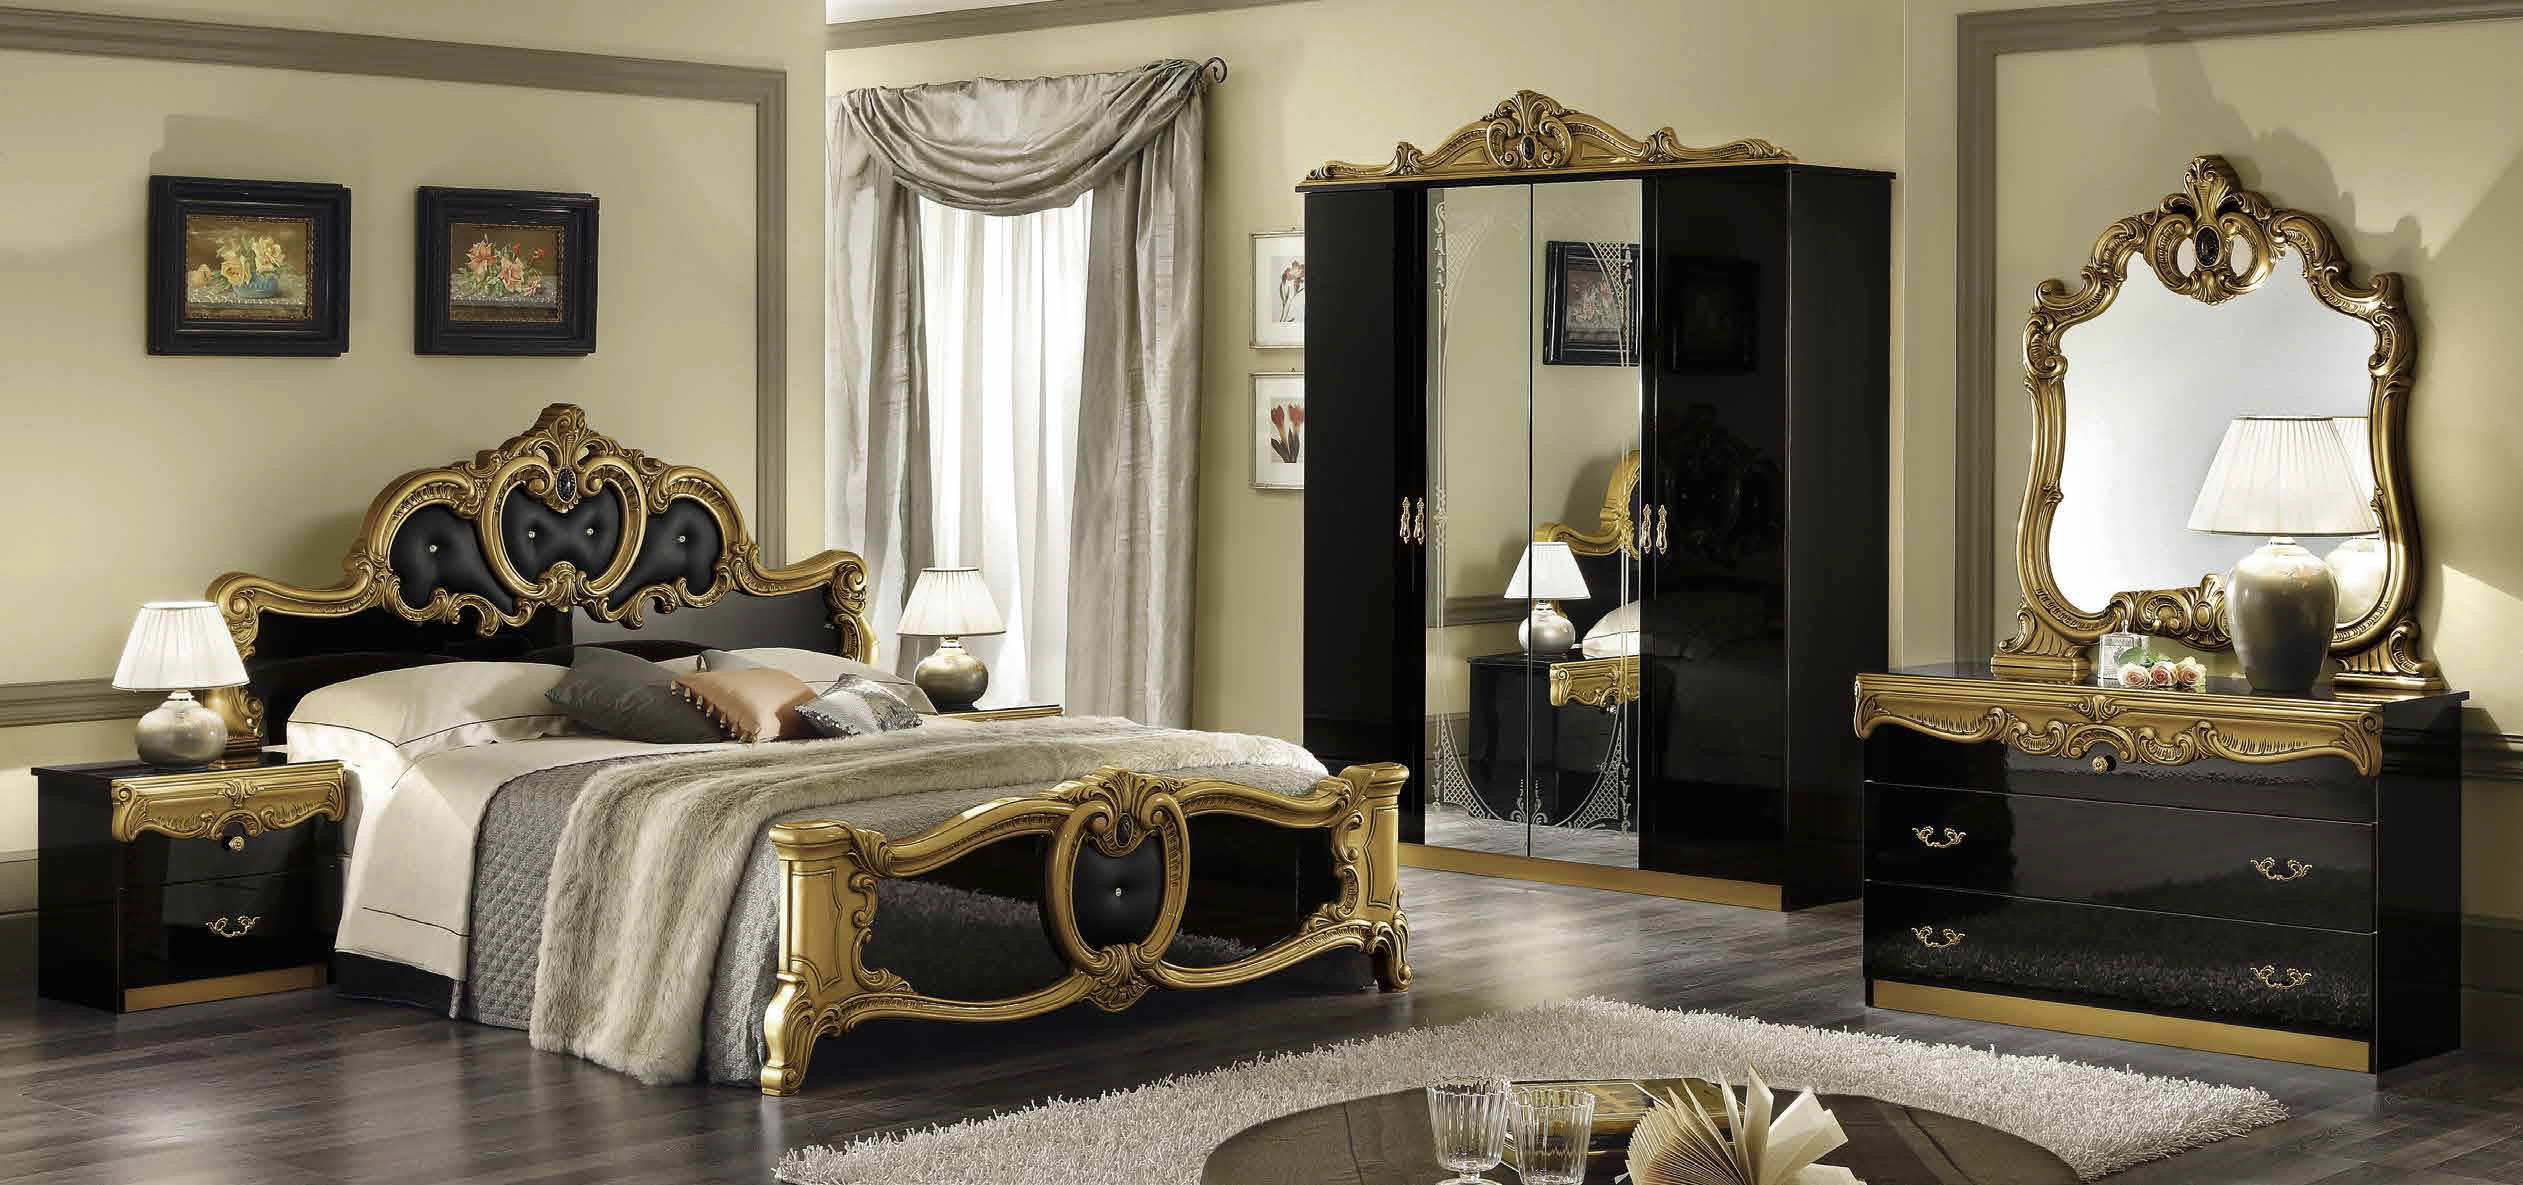 barocco schwarz gold schlafzimmer yuvam m belhaus in. Black Bedroom Furniture Sets. Home Design Ideas